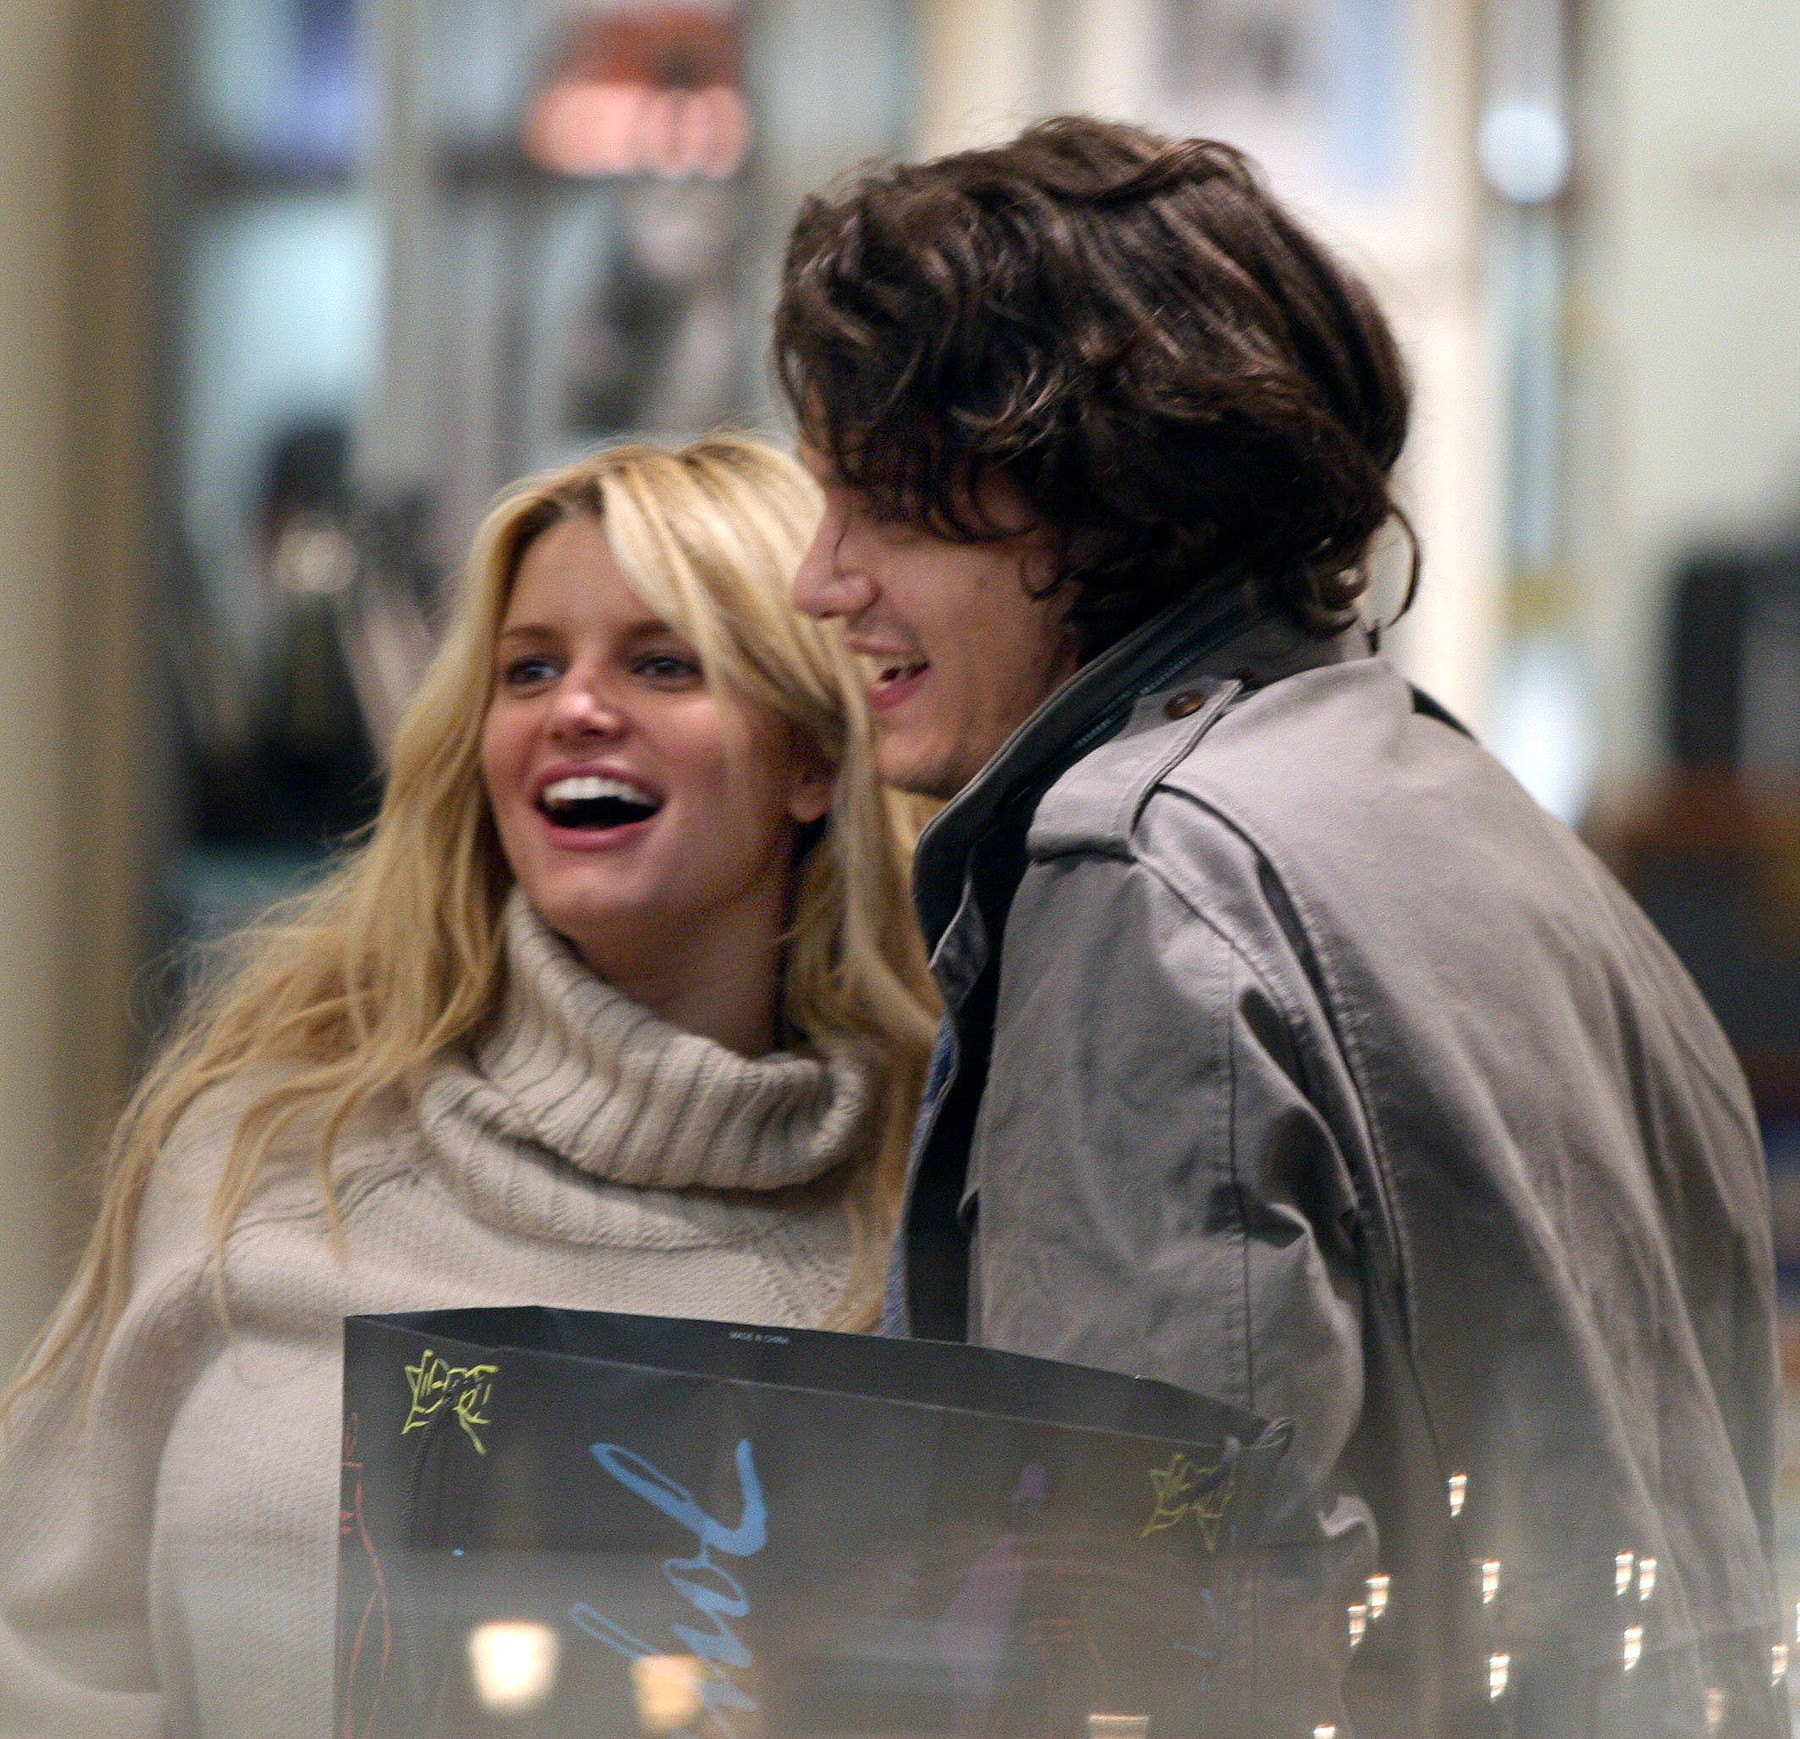 NYC  12/30/06.EXCLUSIVE: Jessica Simpson and John Mayer shopping and high-fiving together at the jewelry counter in Barneys on Madison Avenue.Digital, Image: 20230527, License: Rights-managed, Restrictions: , Model Release: no, Credit line: PHOTOlink / Newscom / Profimedia